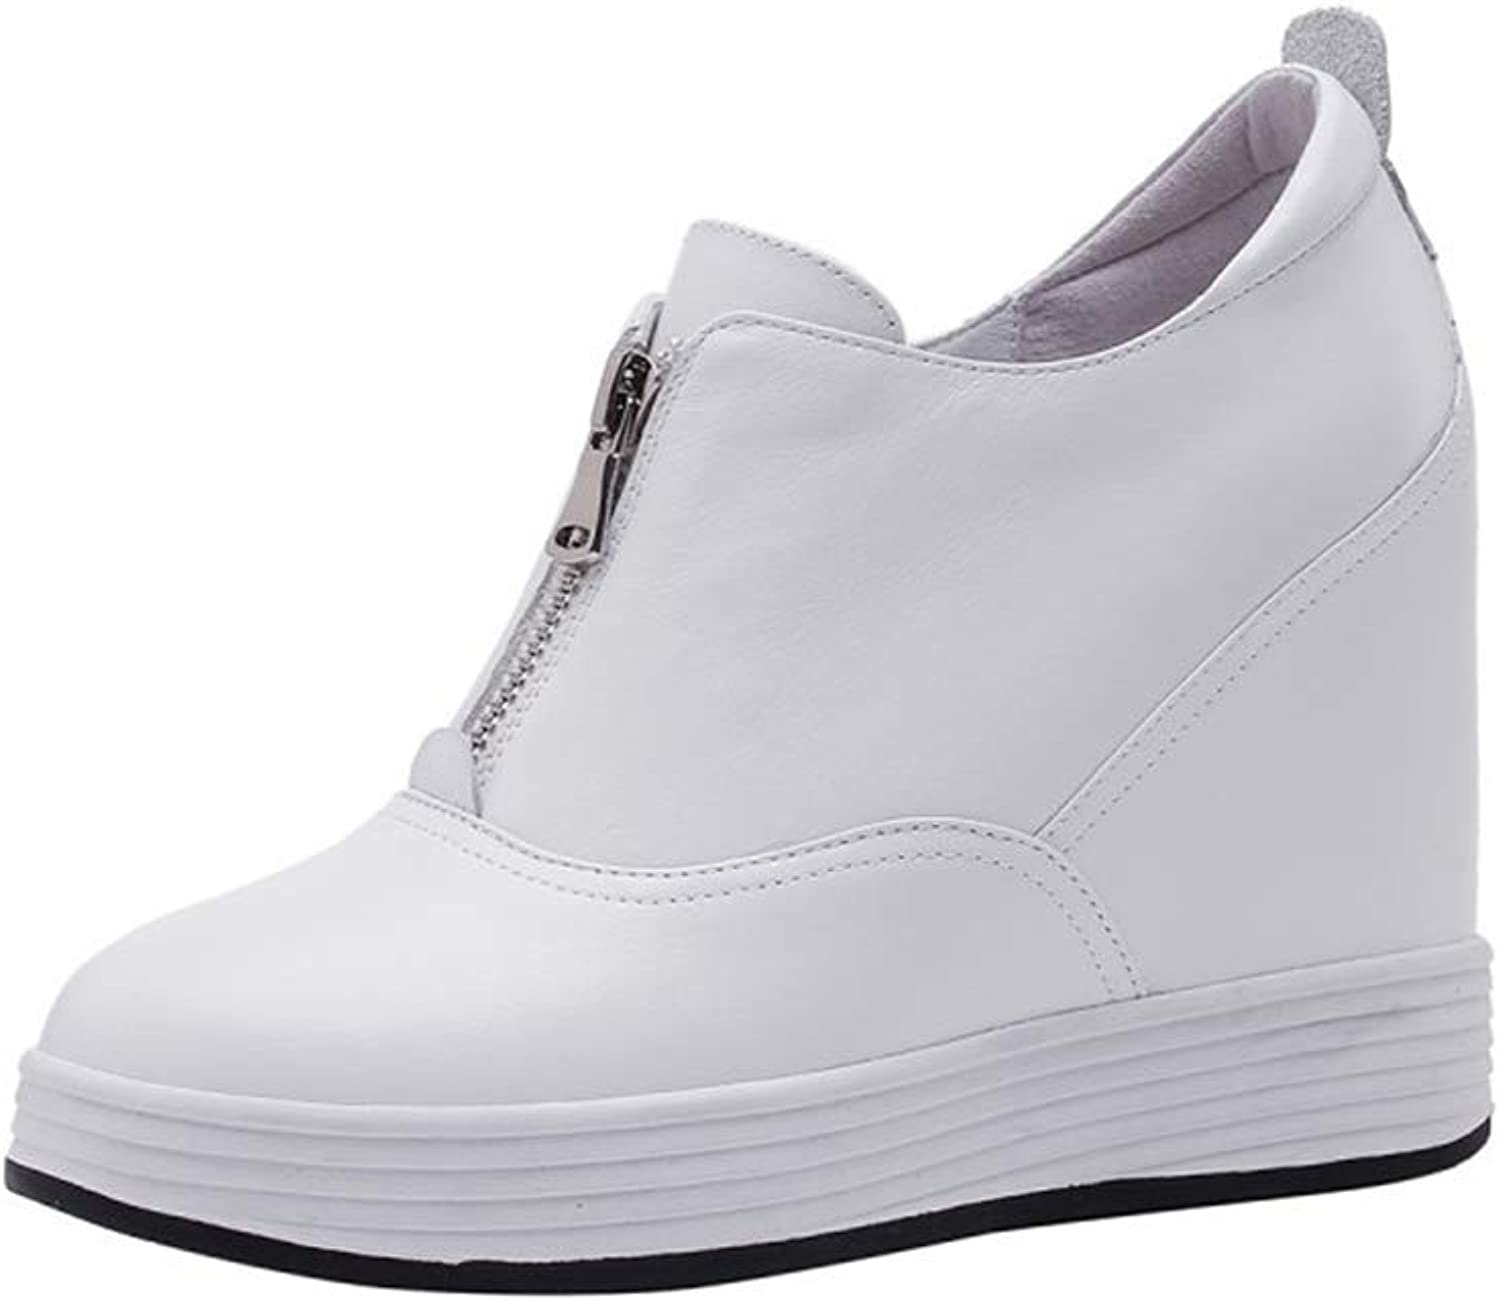 Women's shoes Leather Wedge shoes Invisible Heightening shoes Flat shoes Spring New Athletic shoes Casual Walking shoes White Black,White,35